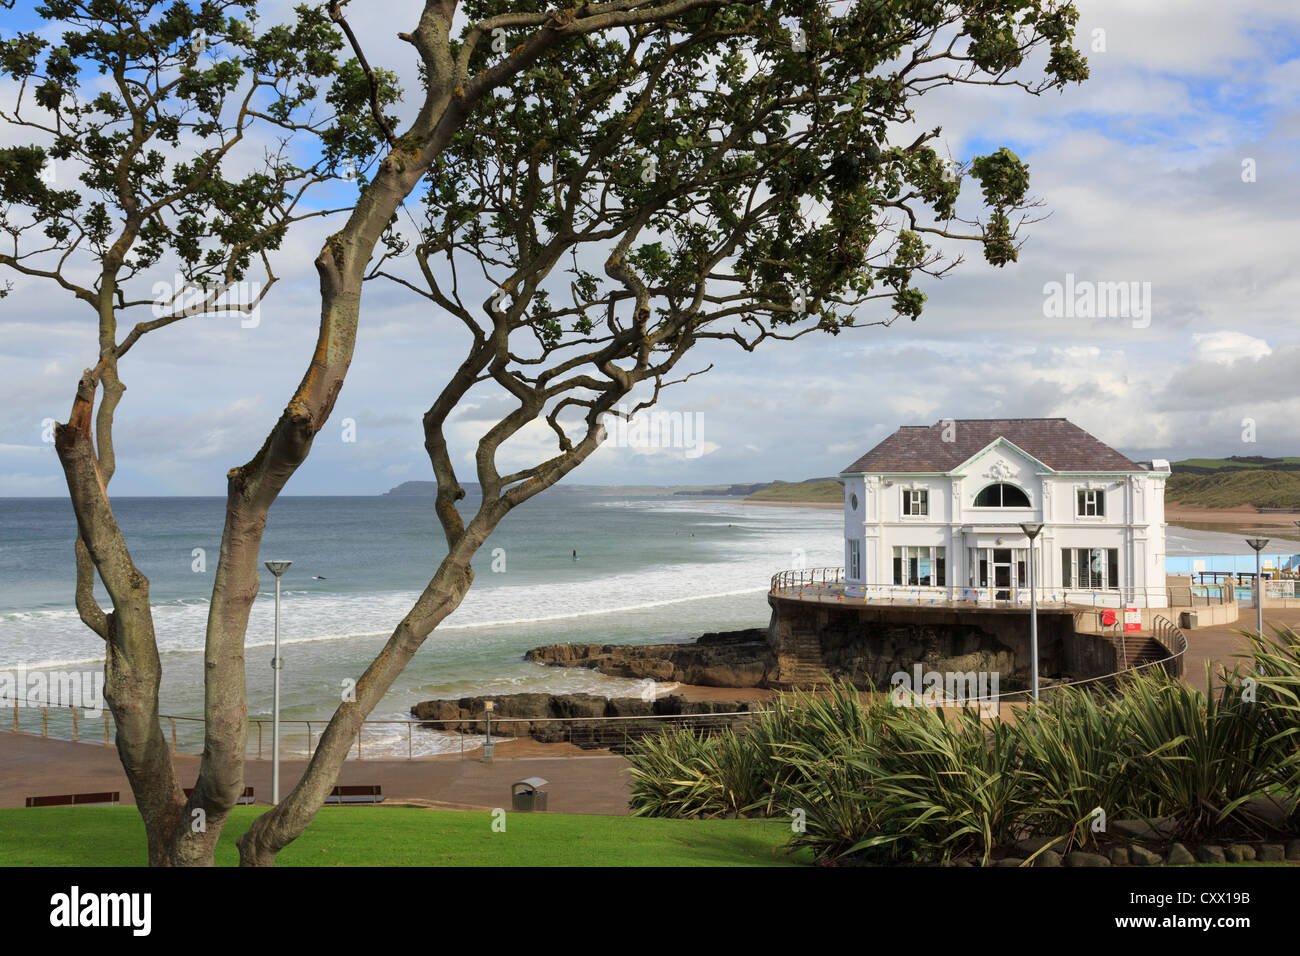 The Arcadia building on the seafront at East Strand beach in Portrush, County Antrim, Northern Ireland, UK Stock Photo